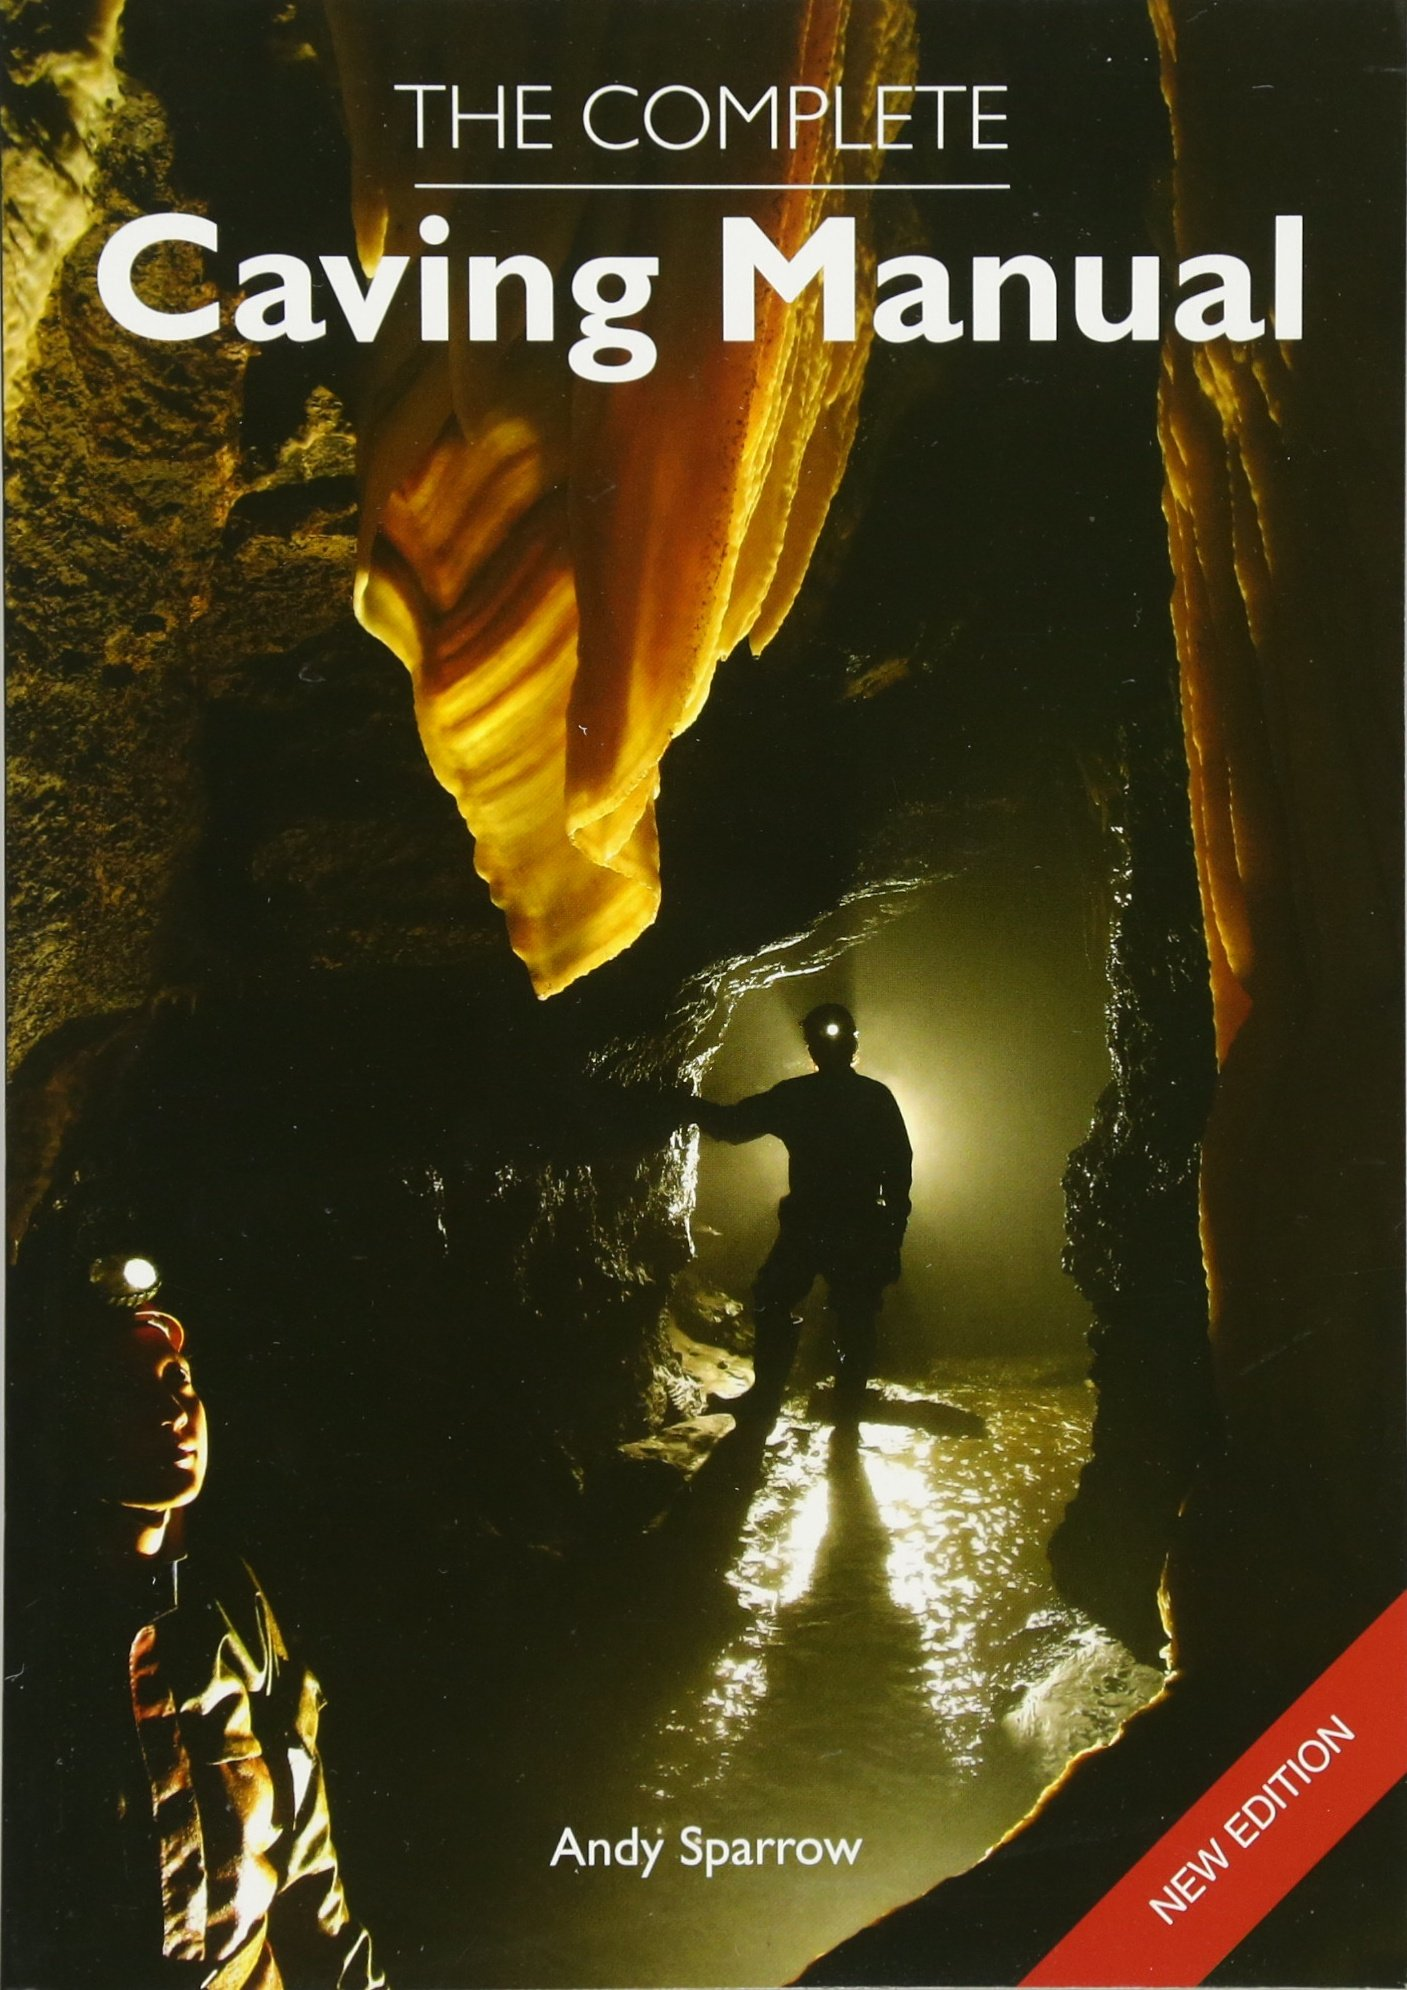 The Complete Caving Manual